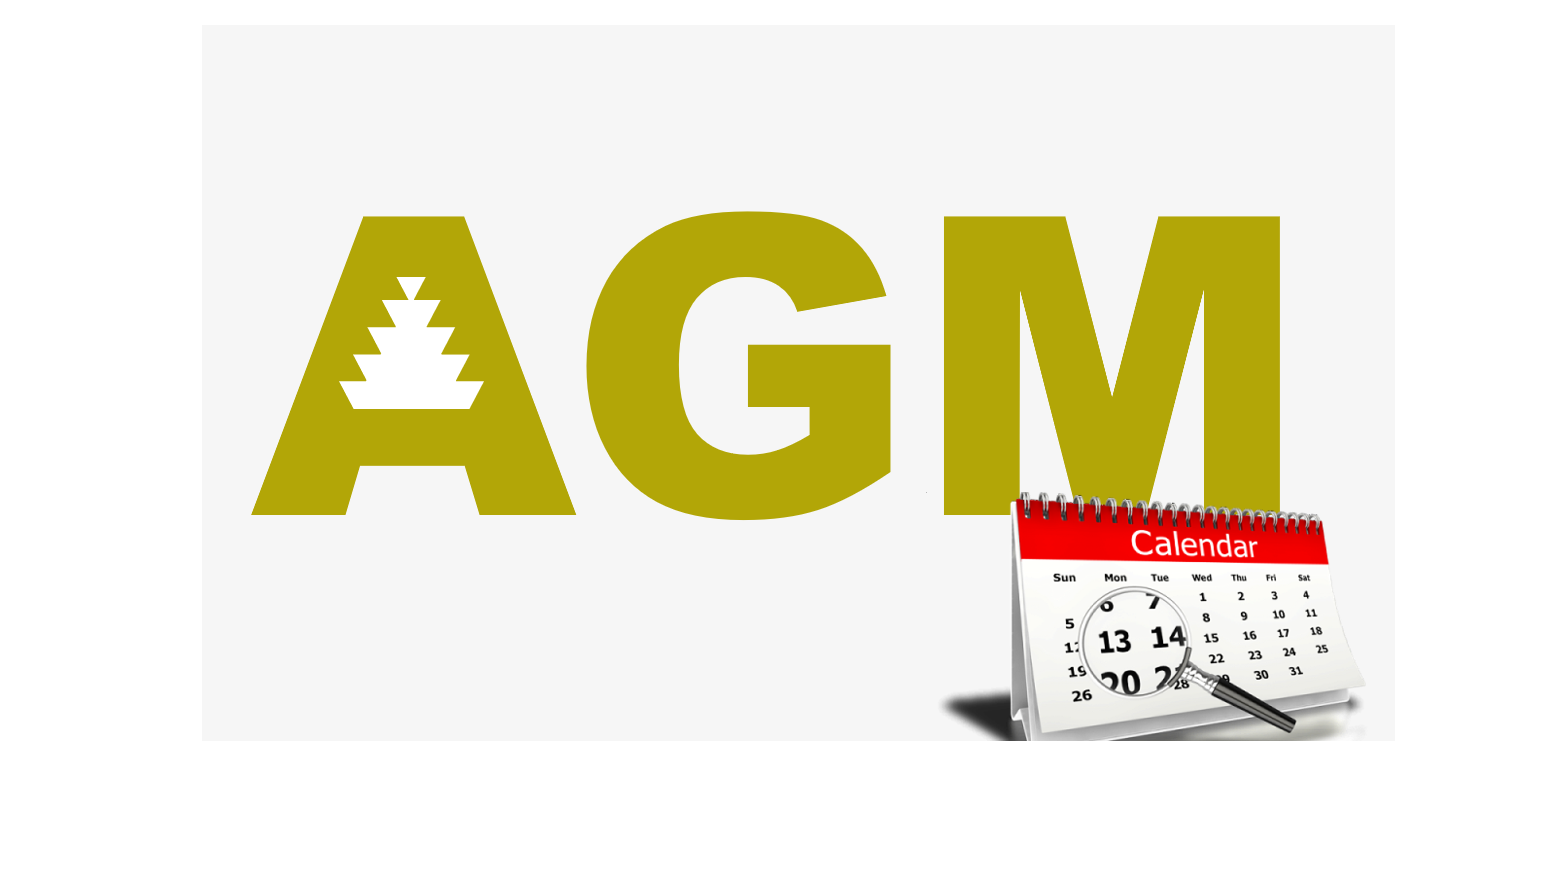 Plans are being made for the 2021 AGM to take place on new dates in May